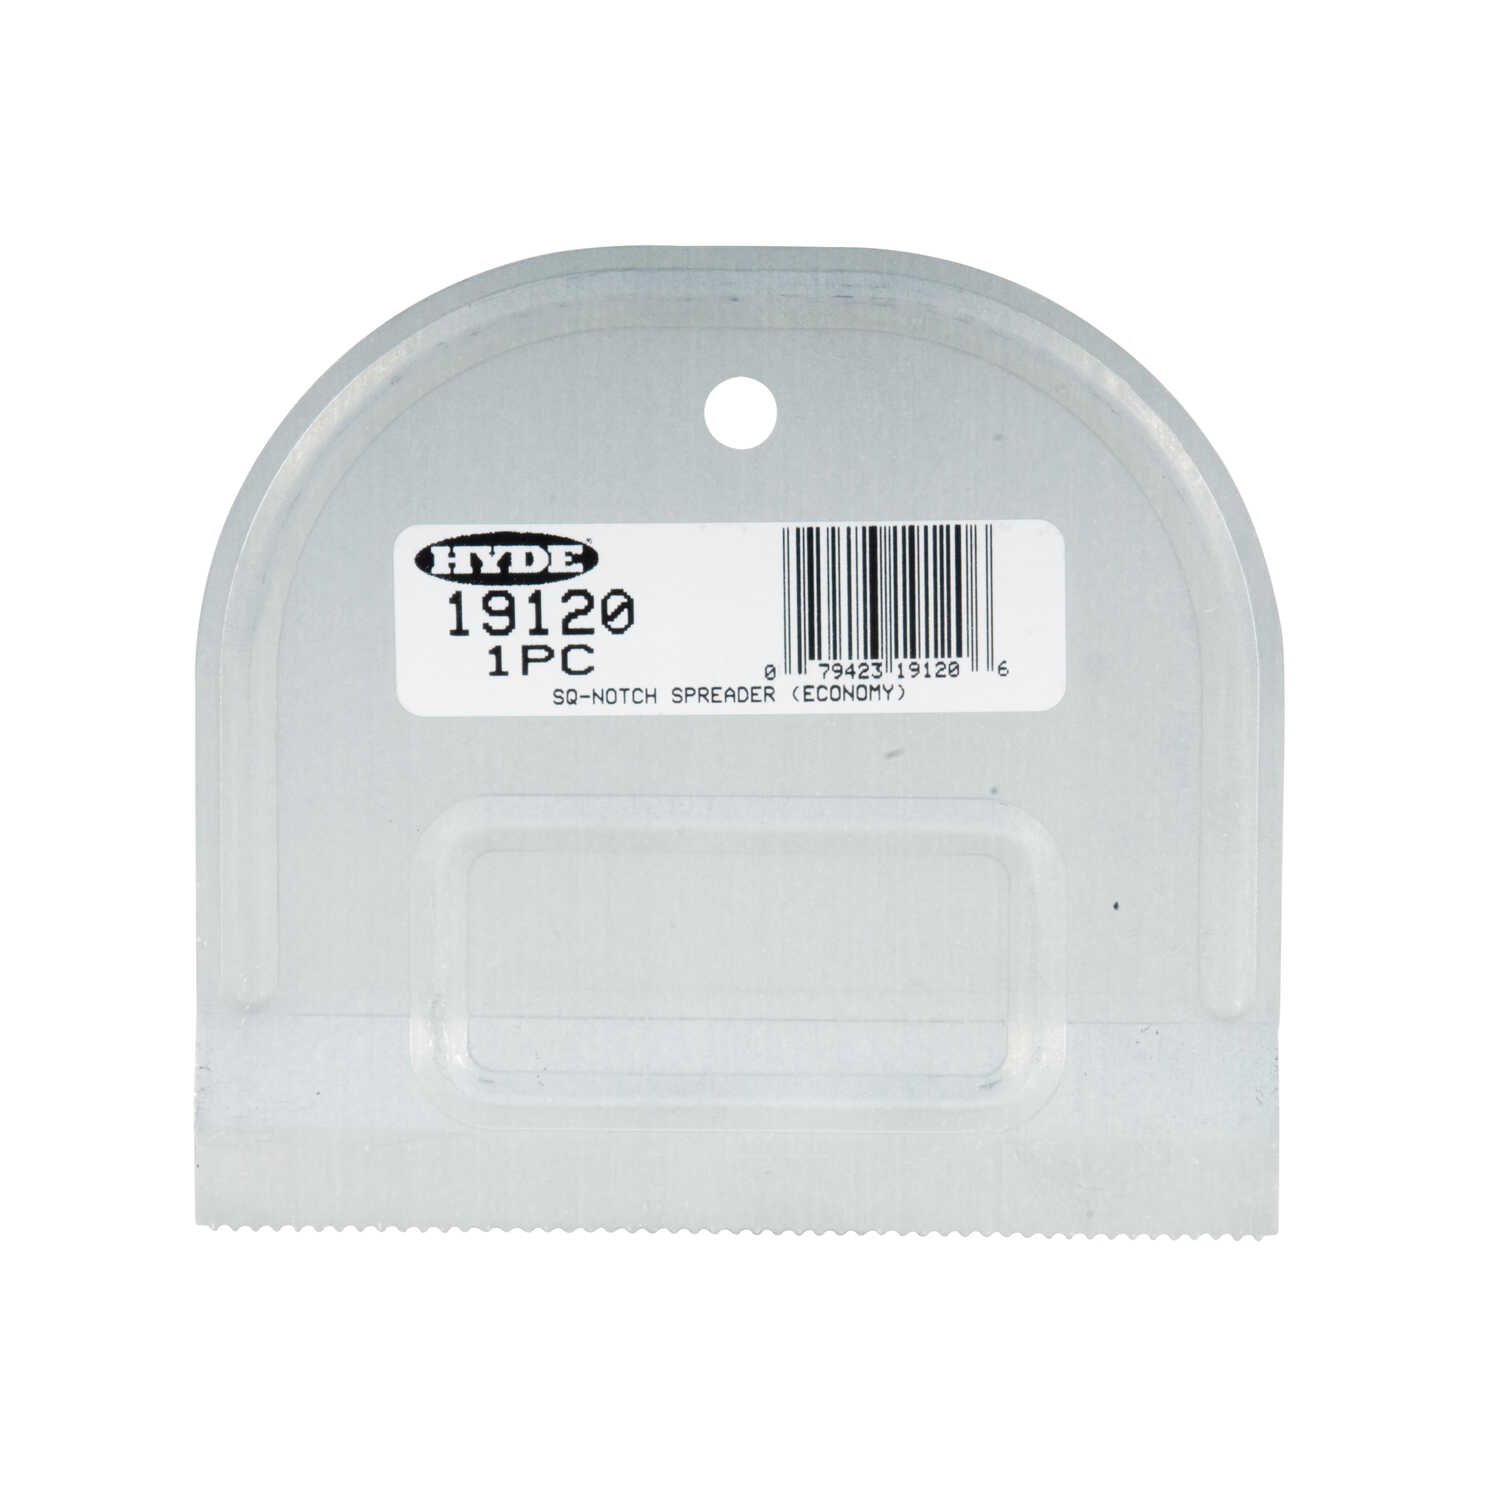 Hyde  Value Series  0.63 in. H x 4.8 in. W x 4.8 in. L Steel  Spreaders Notch  25 pk